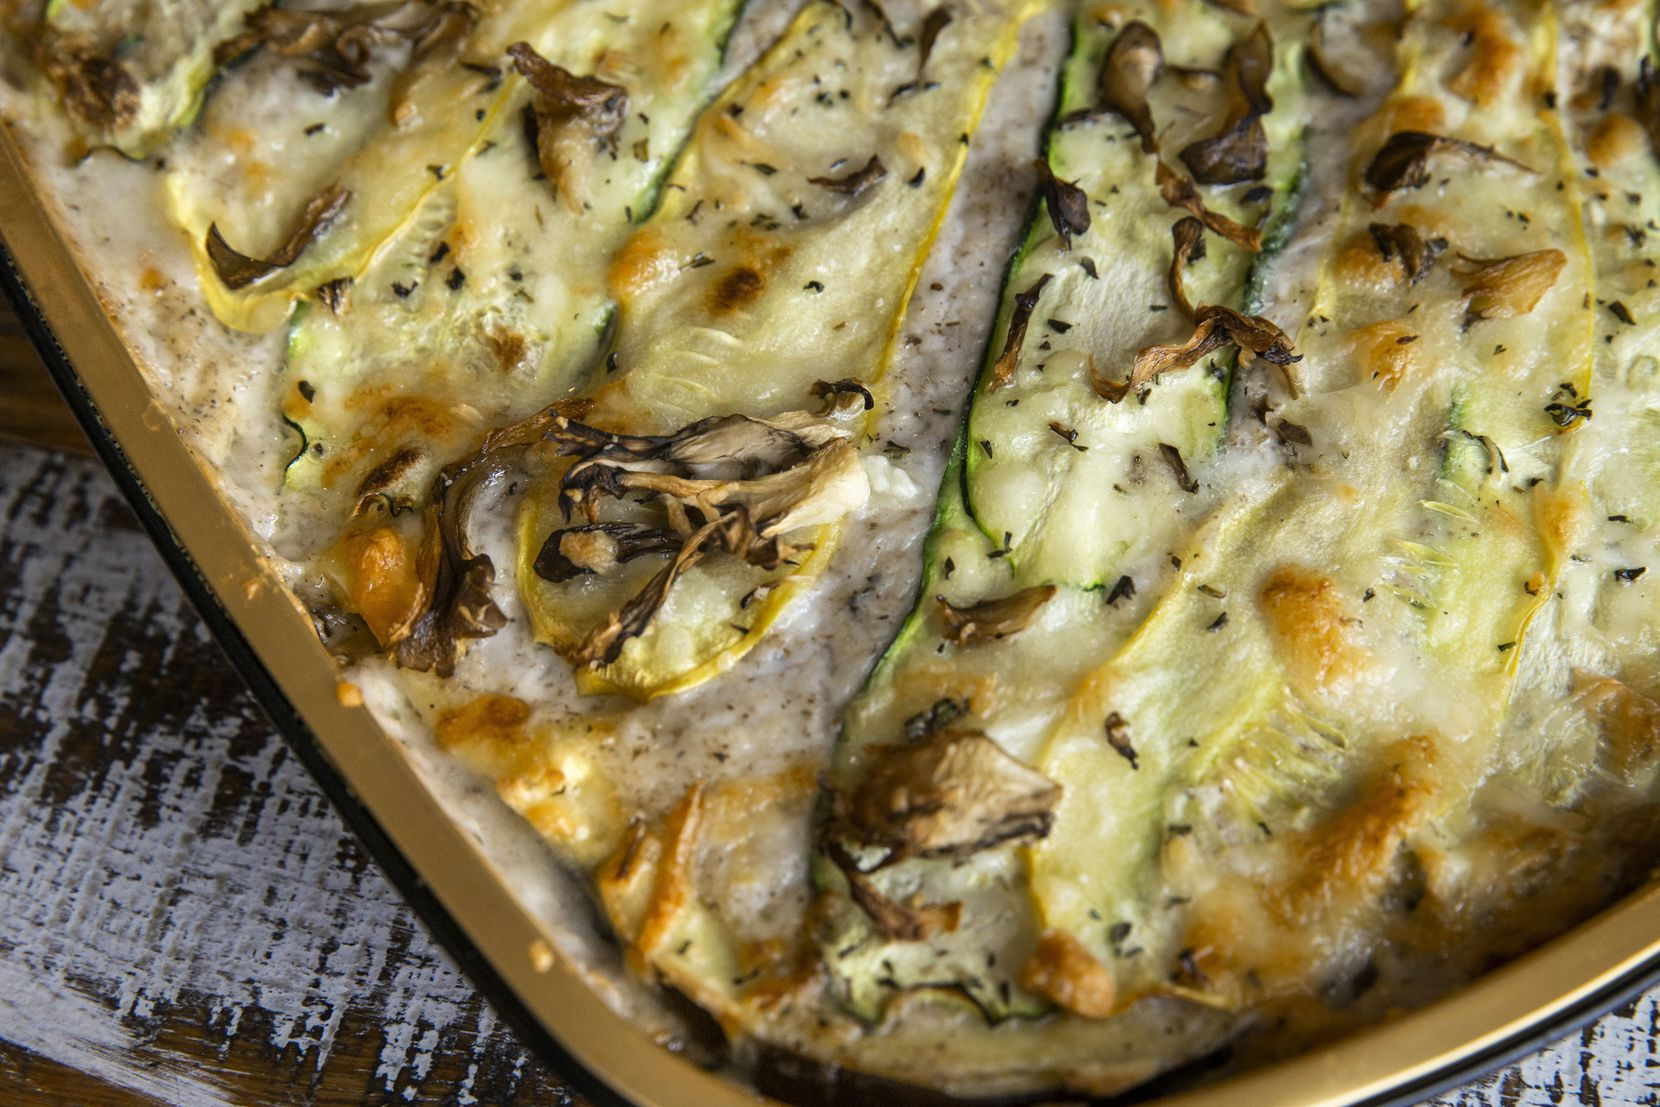 The vegetable lasagna at Gemma American bistro in Dallas features asparagus, local squash, zucchini, eggplant, pesto, mushroom béchamel, smoked Gouda and Gruyère.